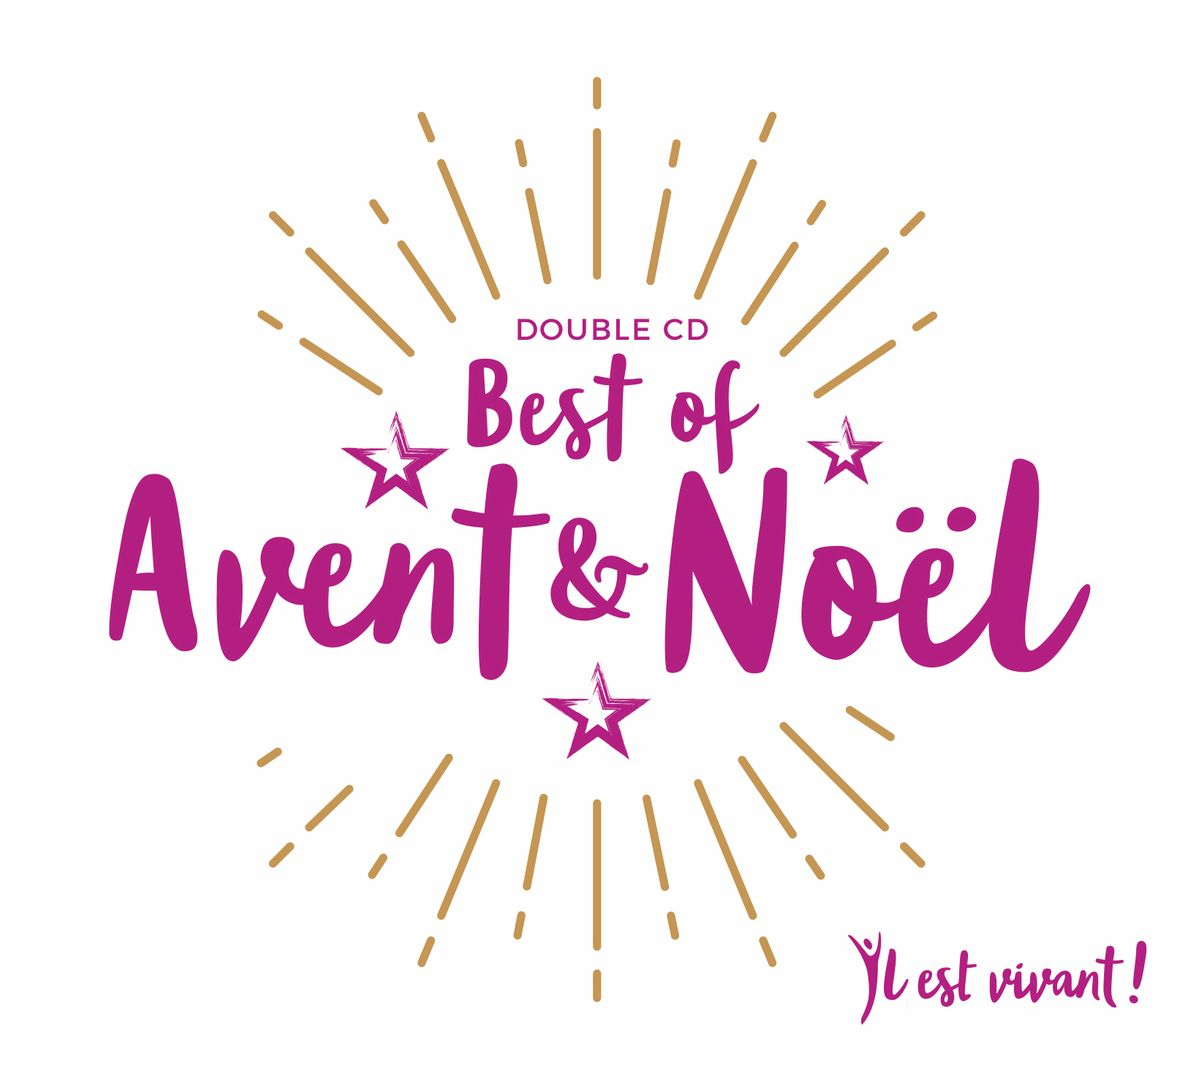 CD IL EST VIVANT ! DOUBLE CD BEST OF AVENT & NOEL - CD 62